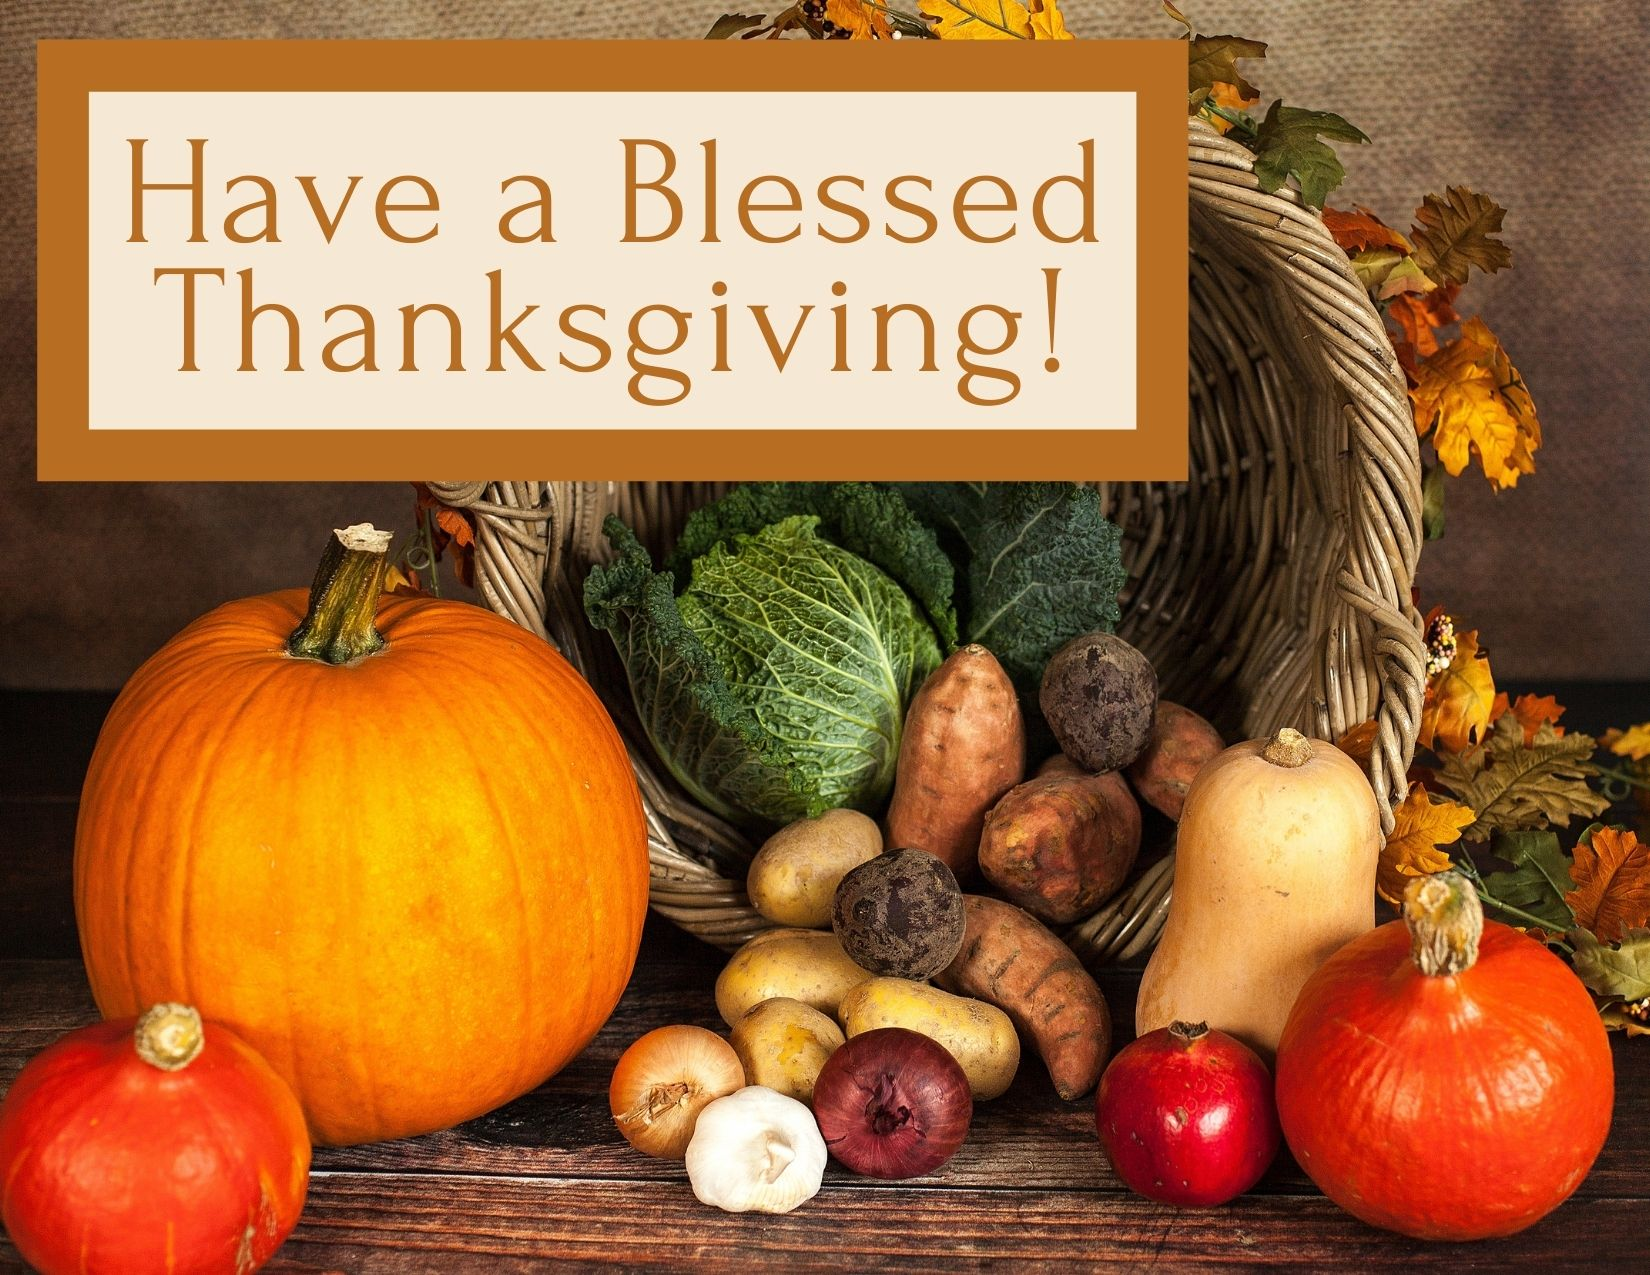 TEXT: Have a Blessed Thanksgiving! IMAGE: Cornucopia with textbox